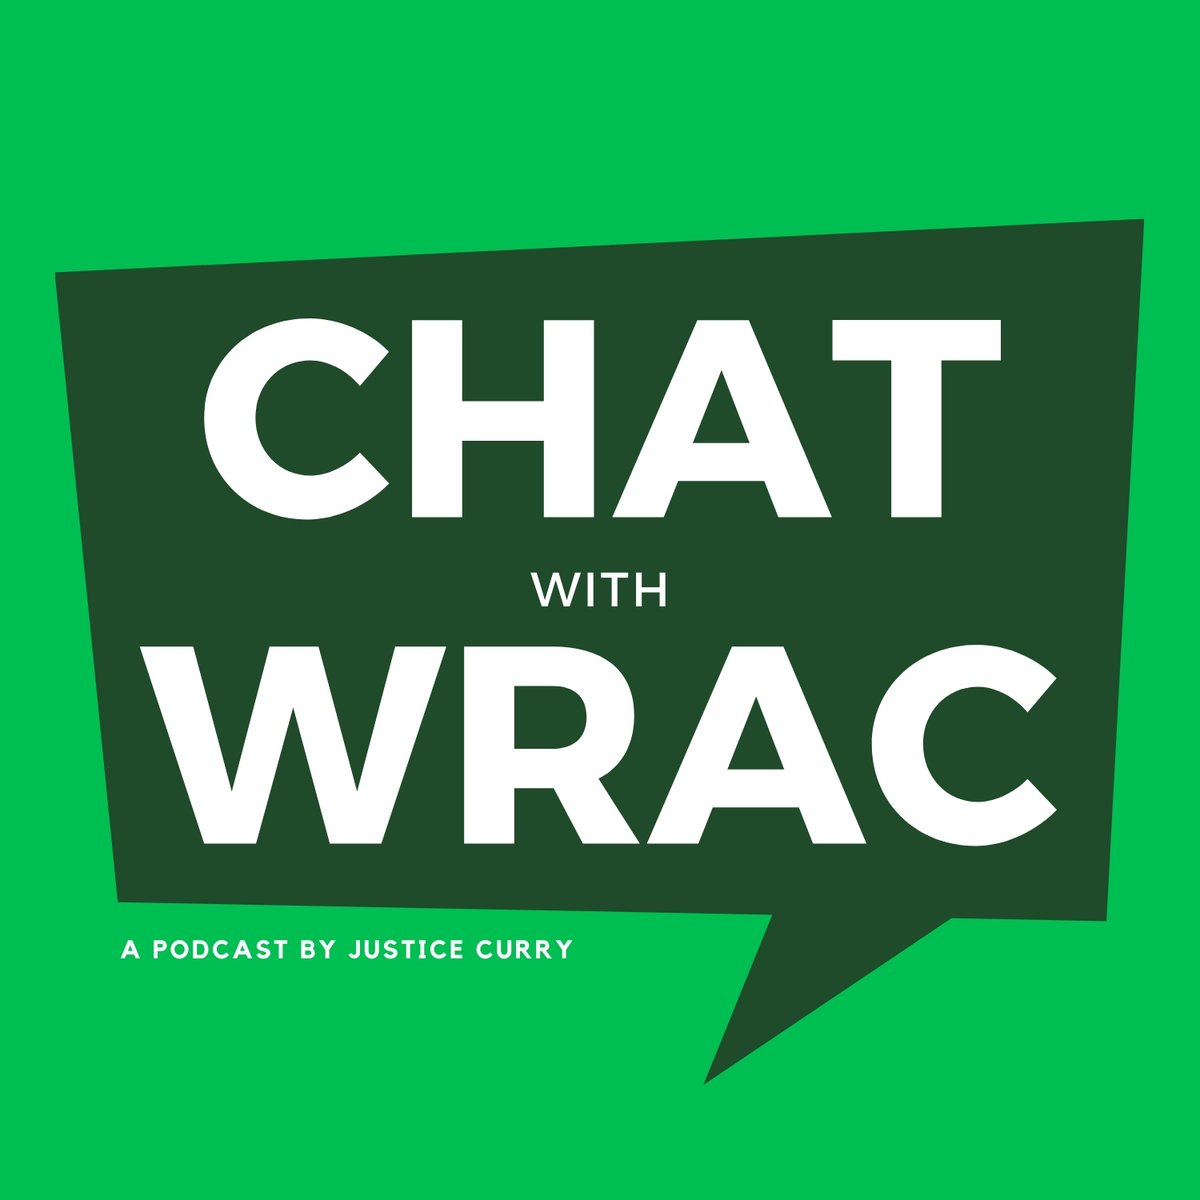 chatwithwrac hashtag on Twitter